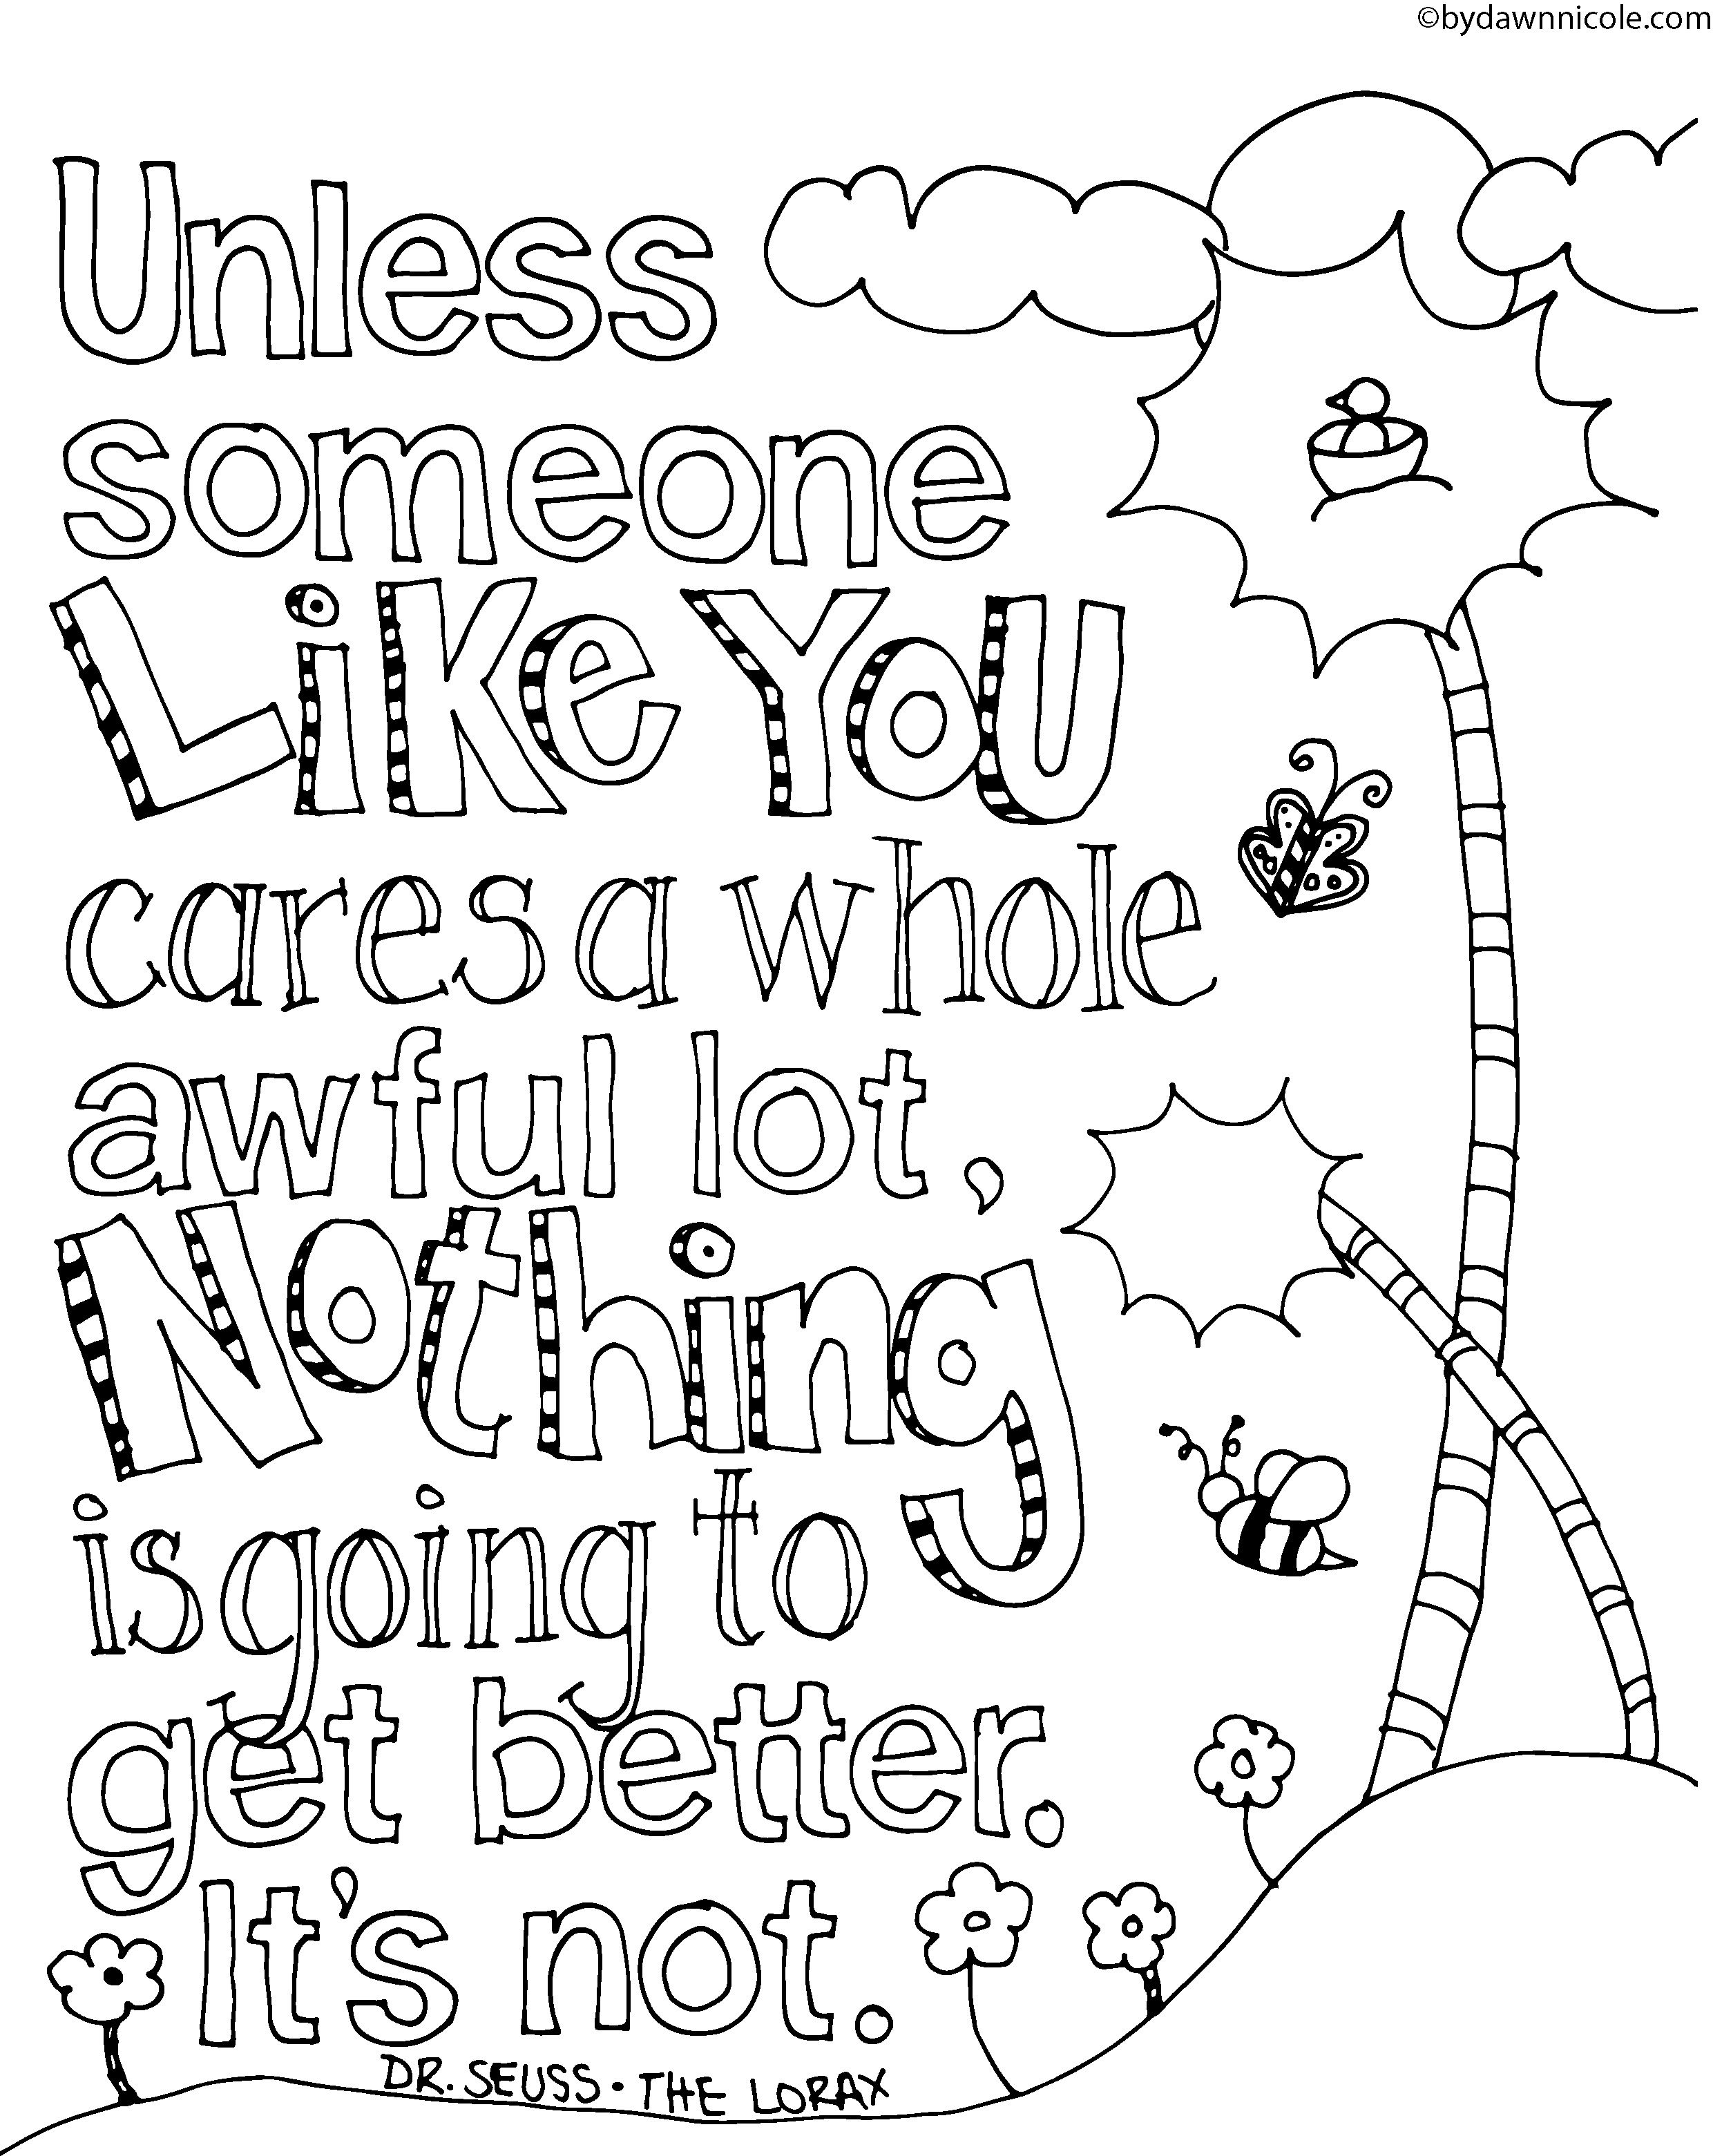 Lorax Coloring Pages to Print | Dr. Seuss | Pinterest | Lorax ...